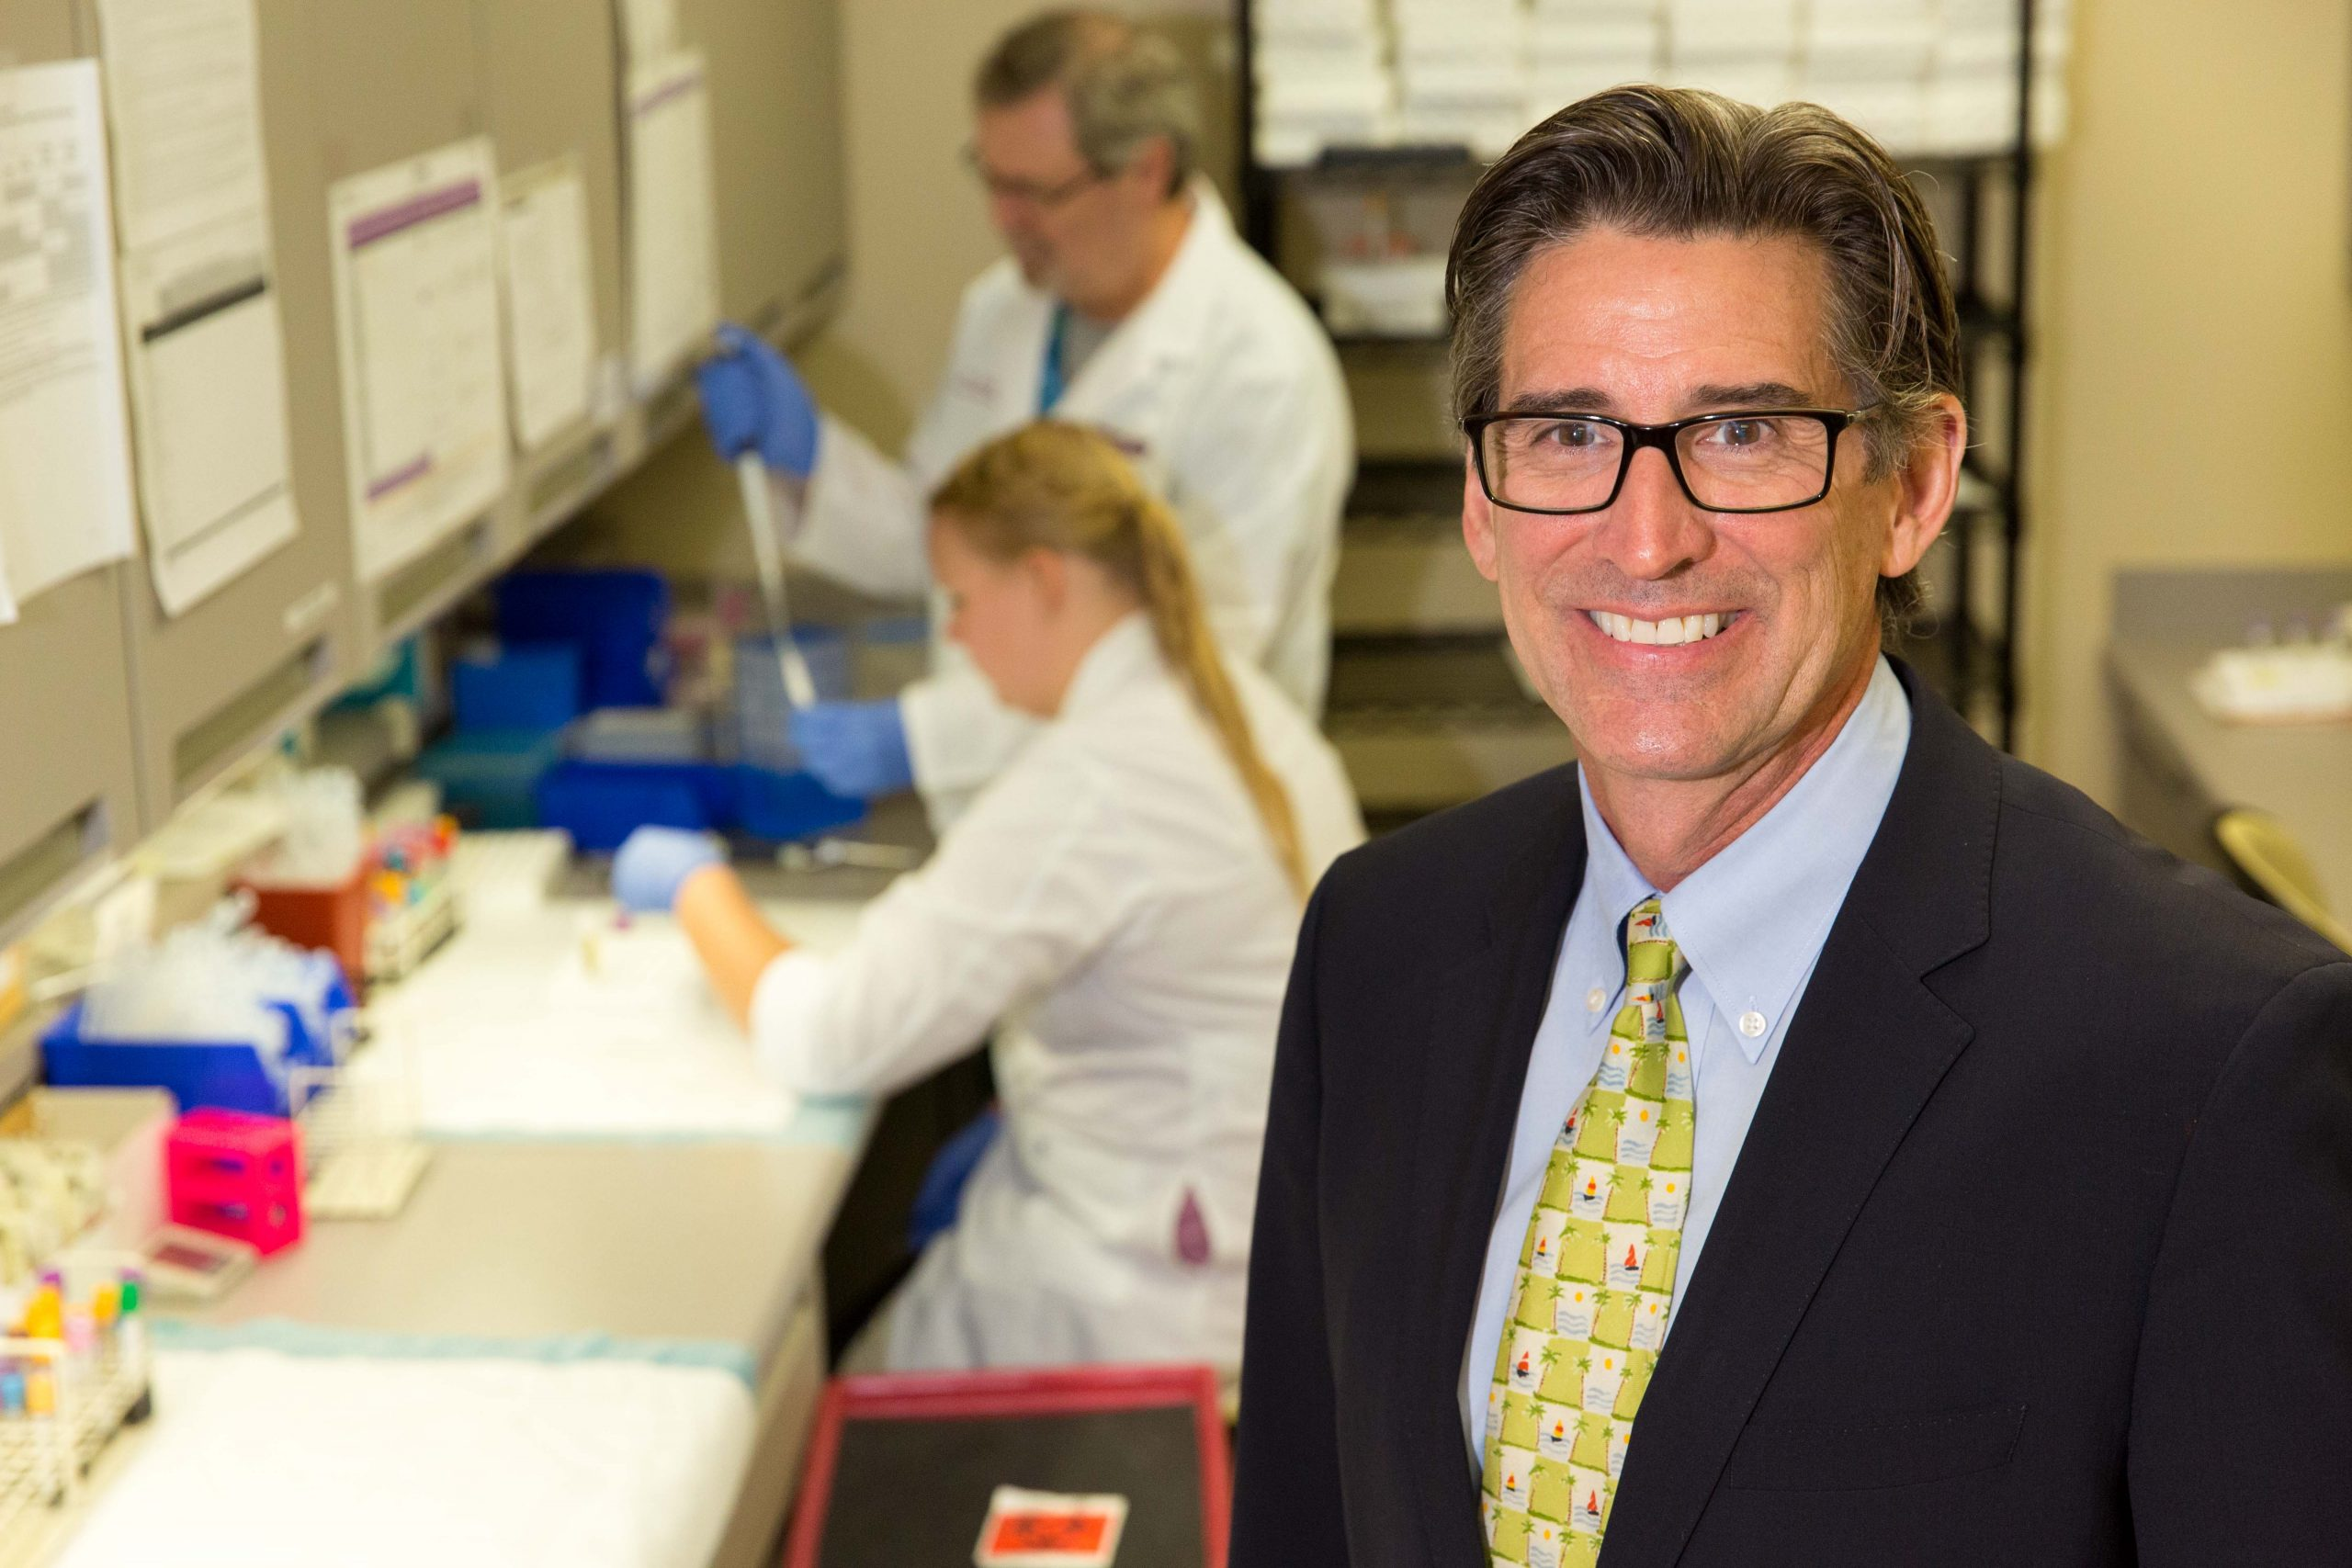 Mark Slater, PhD is being honored with the 2021 Jon W. McGarity Arizona Bioscience Leader of the Year Award by AZBio.